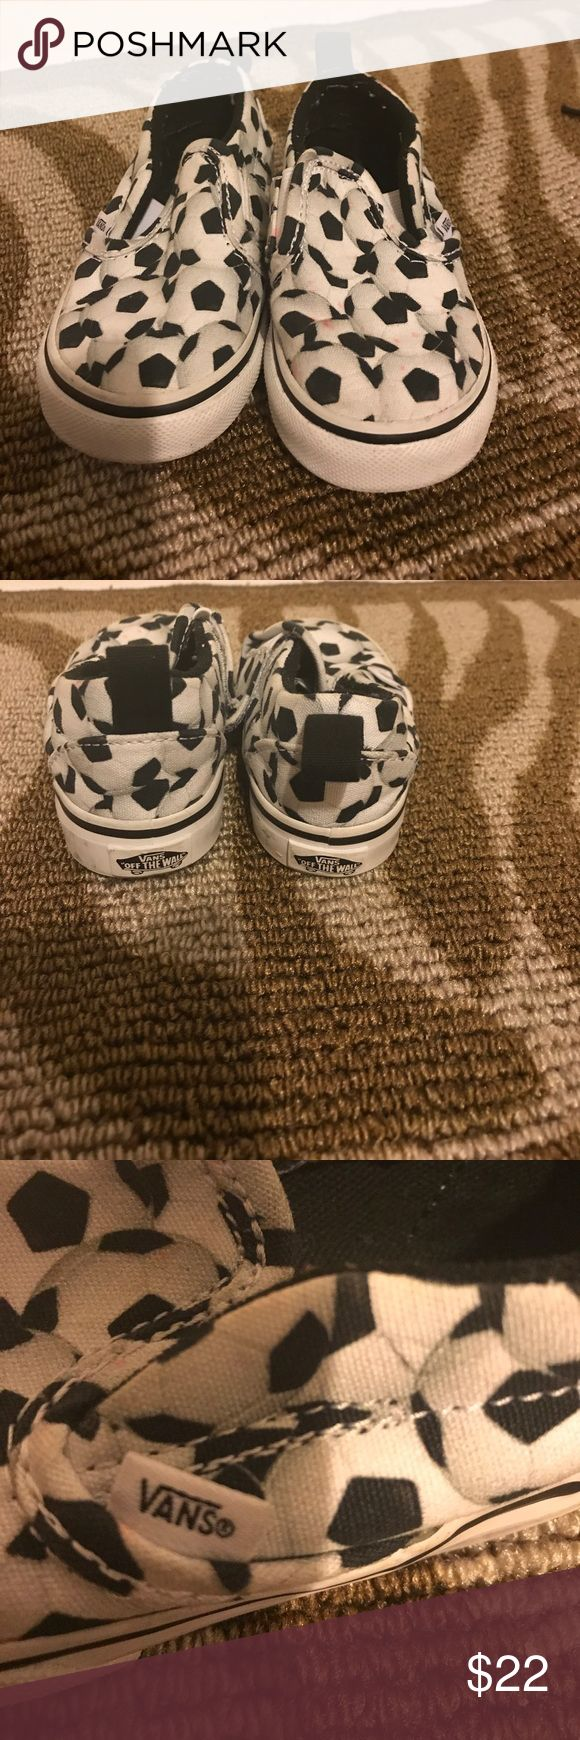 Toddler slip on Vans w/ soccer ball print! Toddler size 6, Slip on lightly worn with small toddlerish scuffs.. Vans Shoes Sneakers